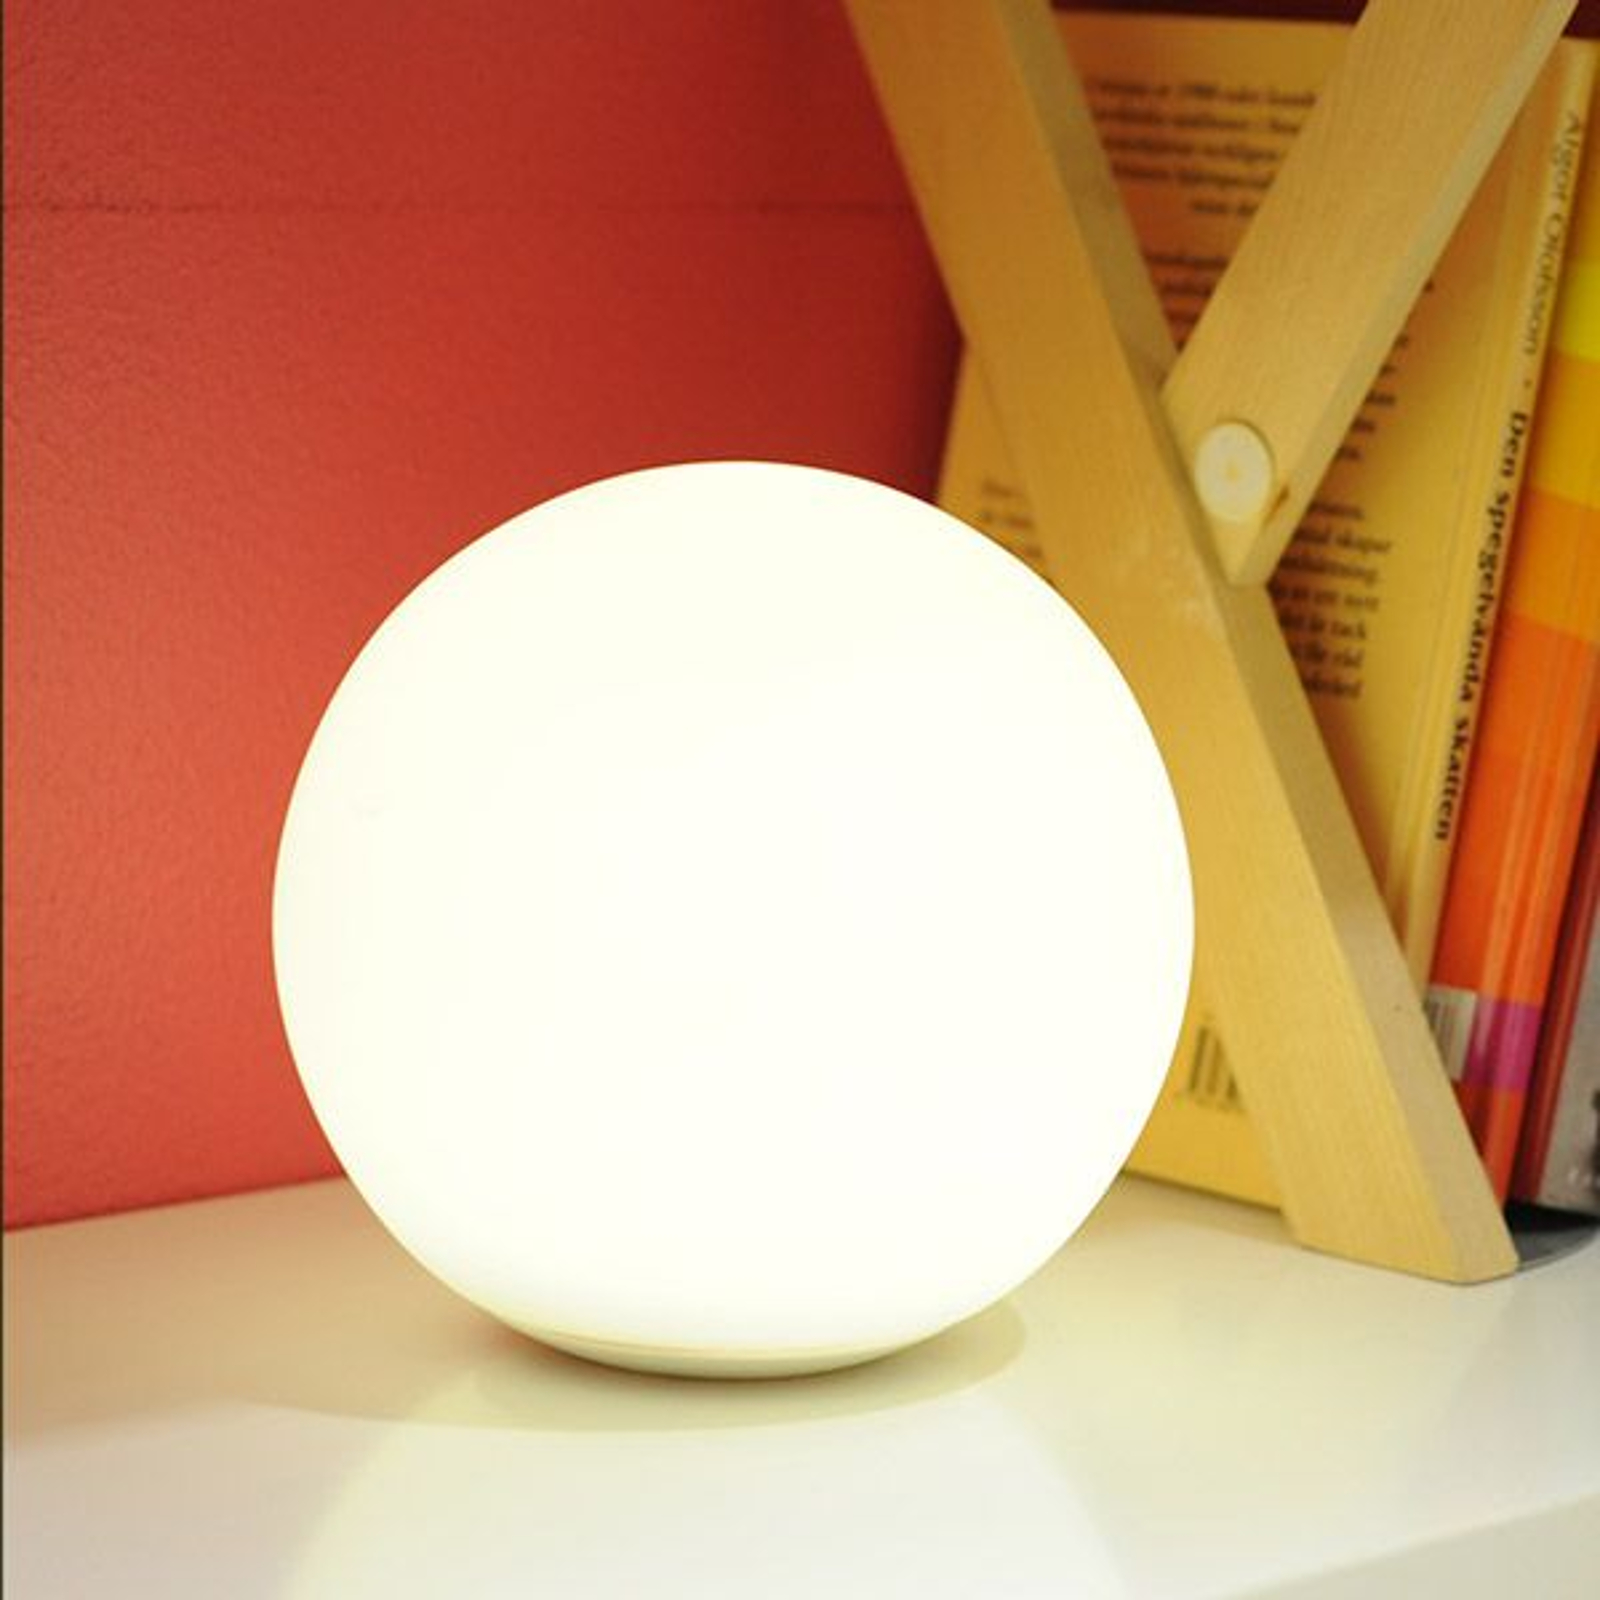 MiPow Playbulb Sphere boule lumineuse LED